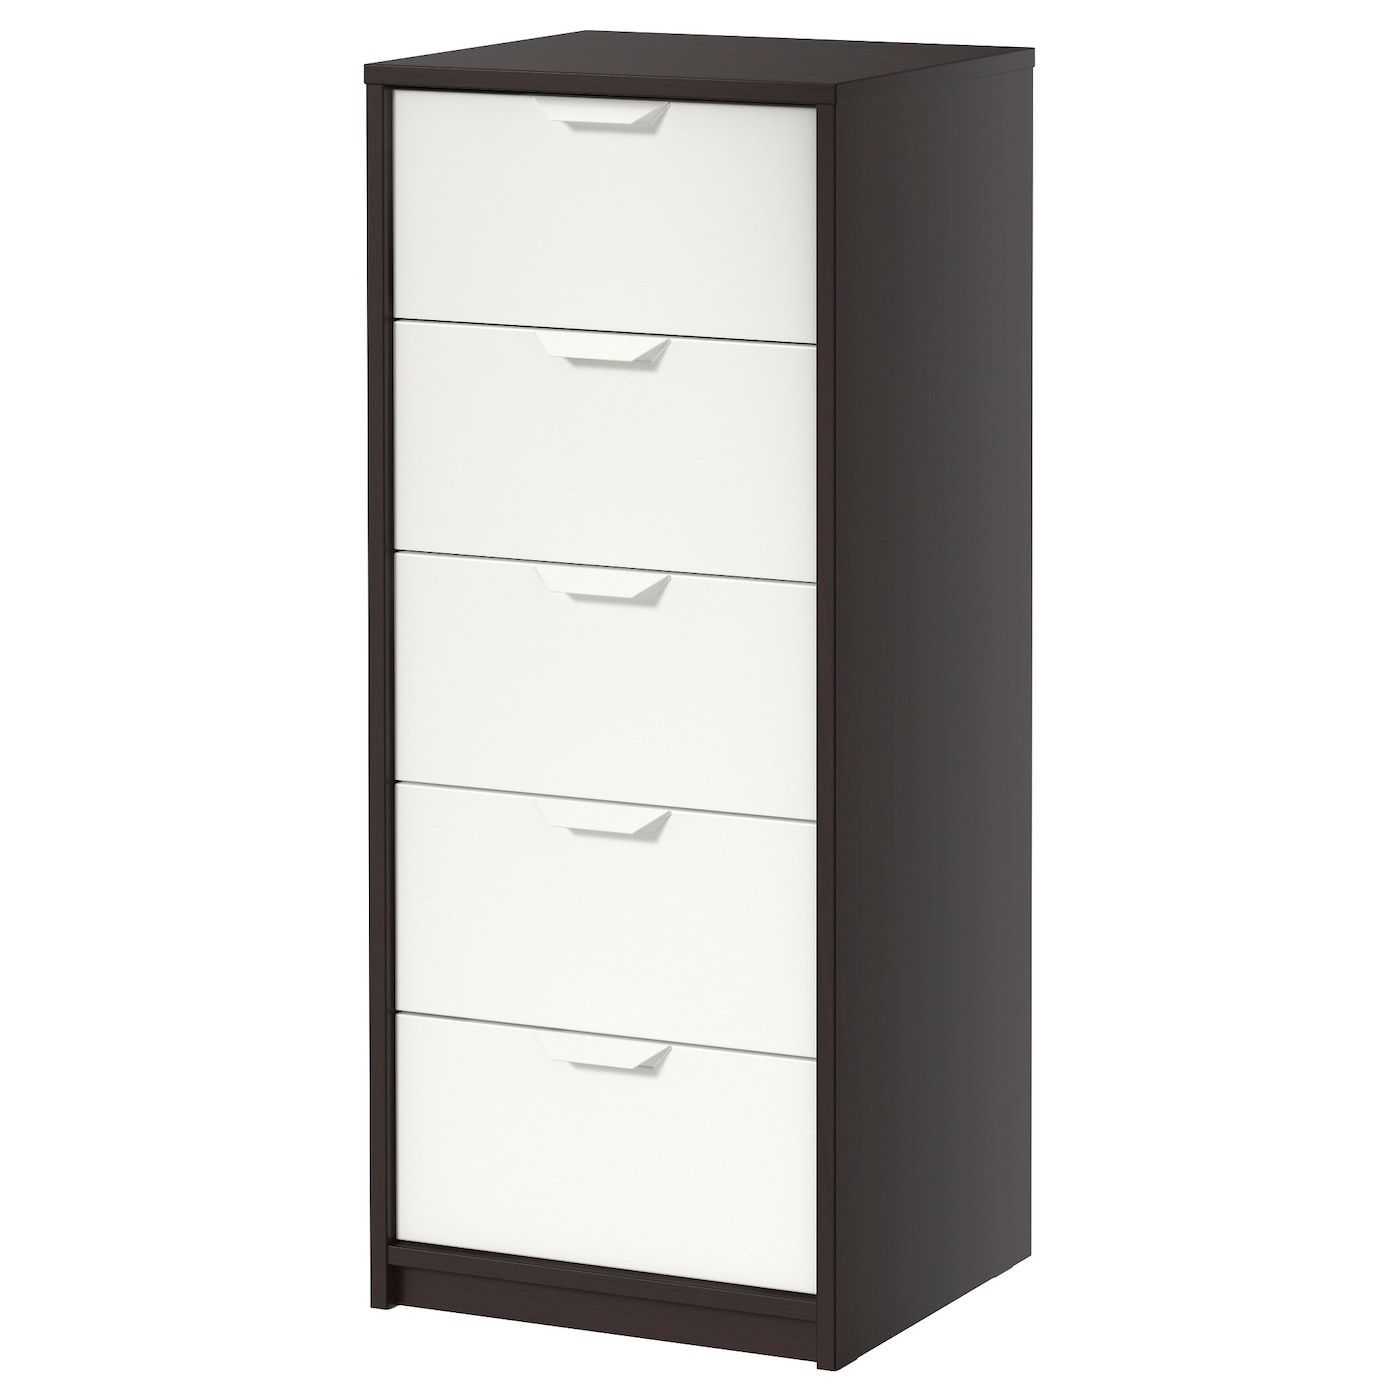 askvoll commode 5 tiroirs brun noir blanc 45x109 cm ikea. Black Bedroom Furniture Sets. Home Design Ideas